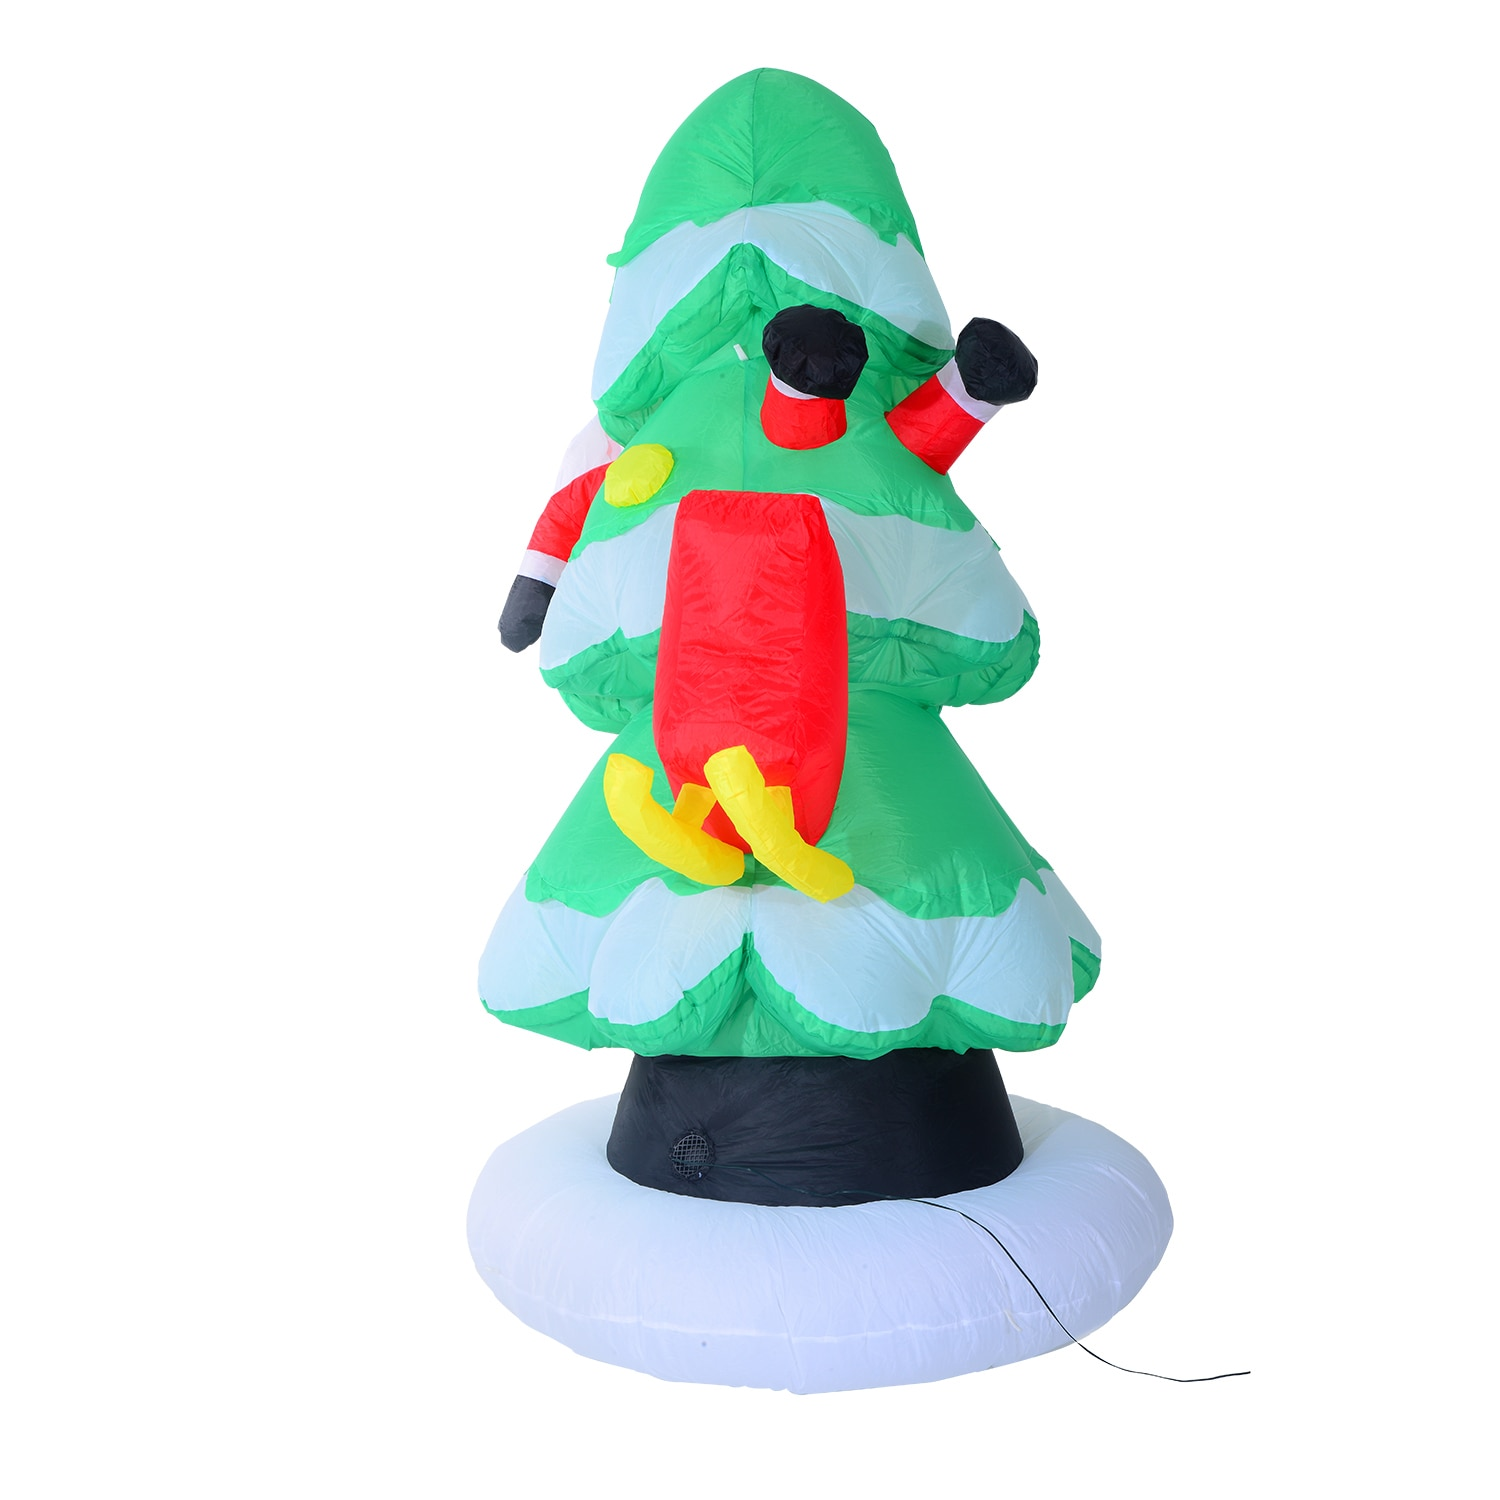 Christmas Tree Inflatable.Homcom 7 Ft Tall Outdoor Lighted Airblown Inflatable Christmas Lawn Decoration Santa Stuck In A Tree